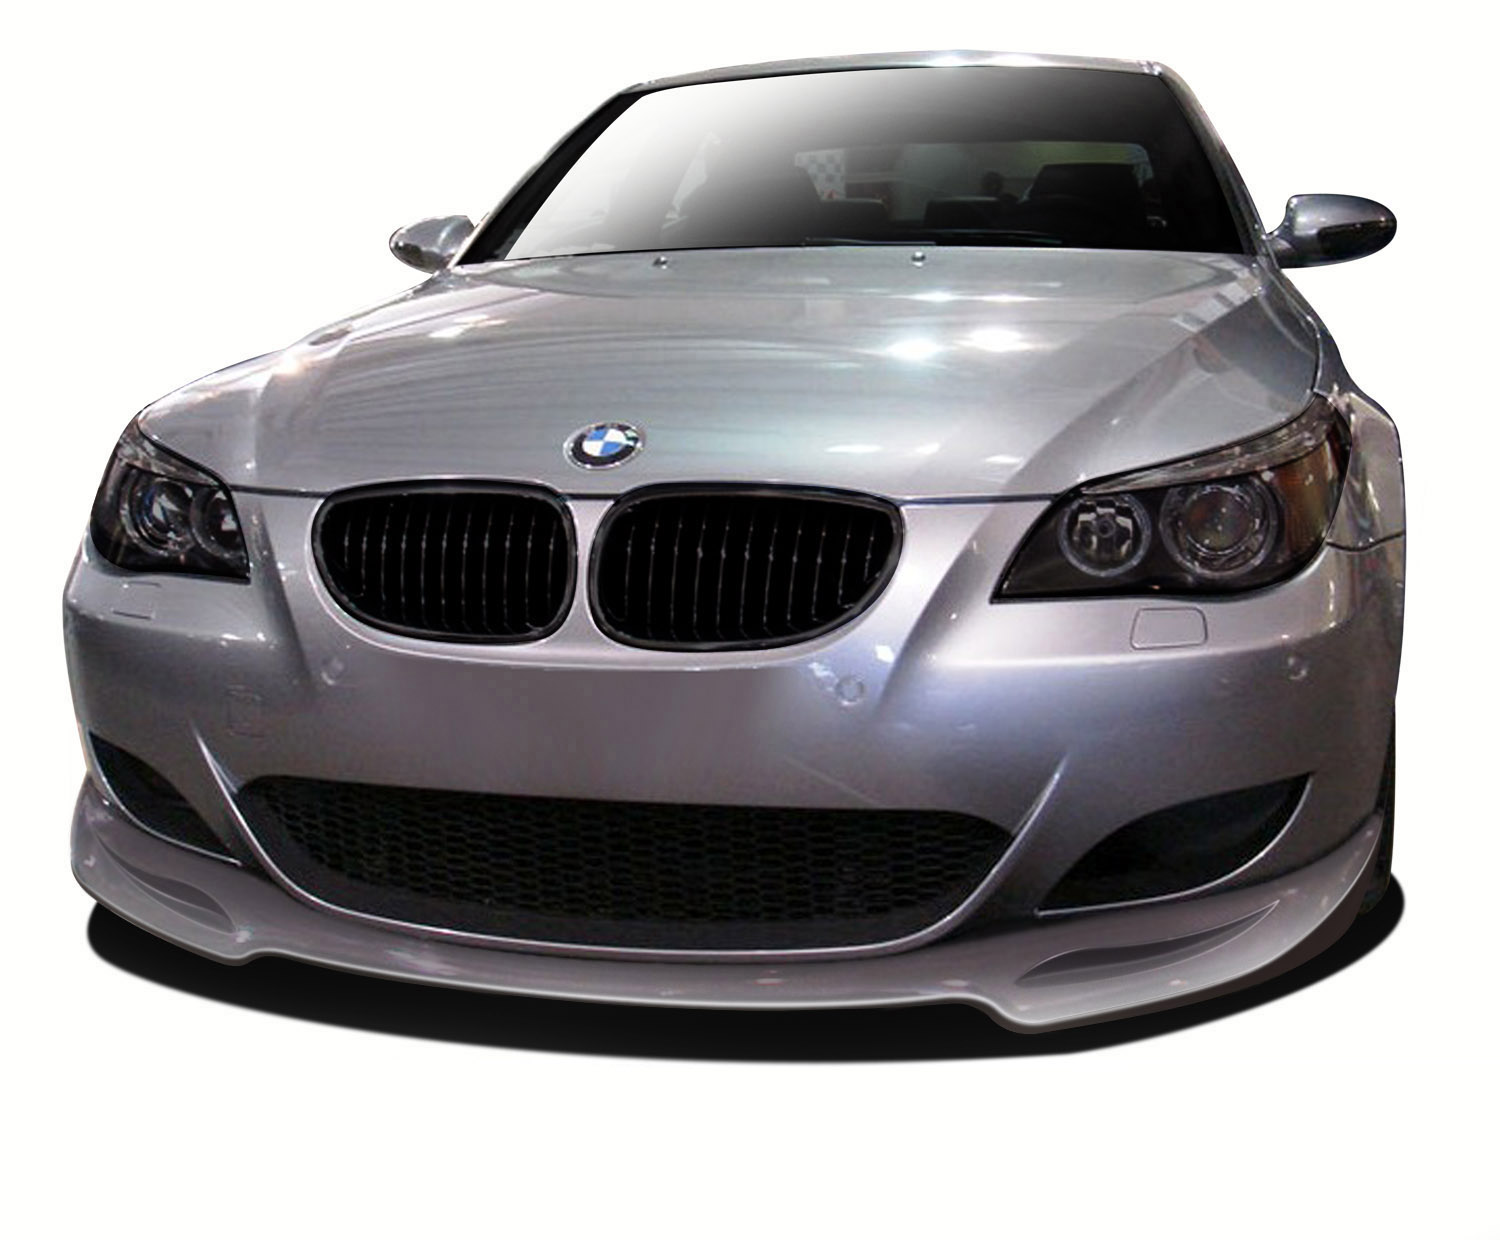 2006 BMW M5 ALL - Fiberglass+ Front Lip/Add On Bodykit - 2006-2010 BMW M5 E60 AF-1 Front Add-On Spoiler ( GFK ) - 1 Piece